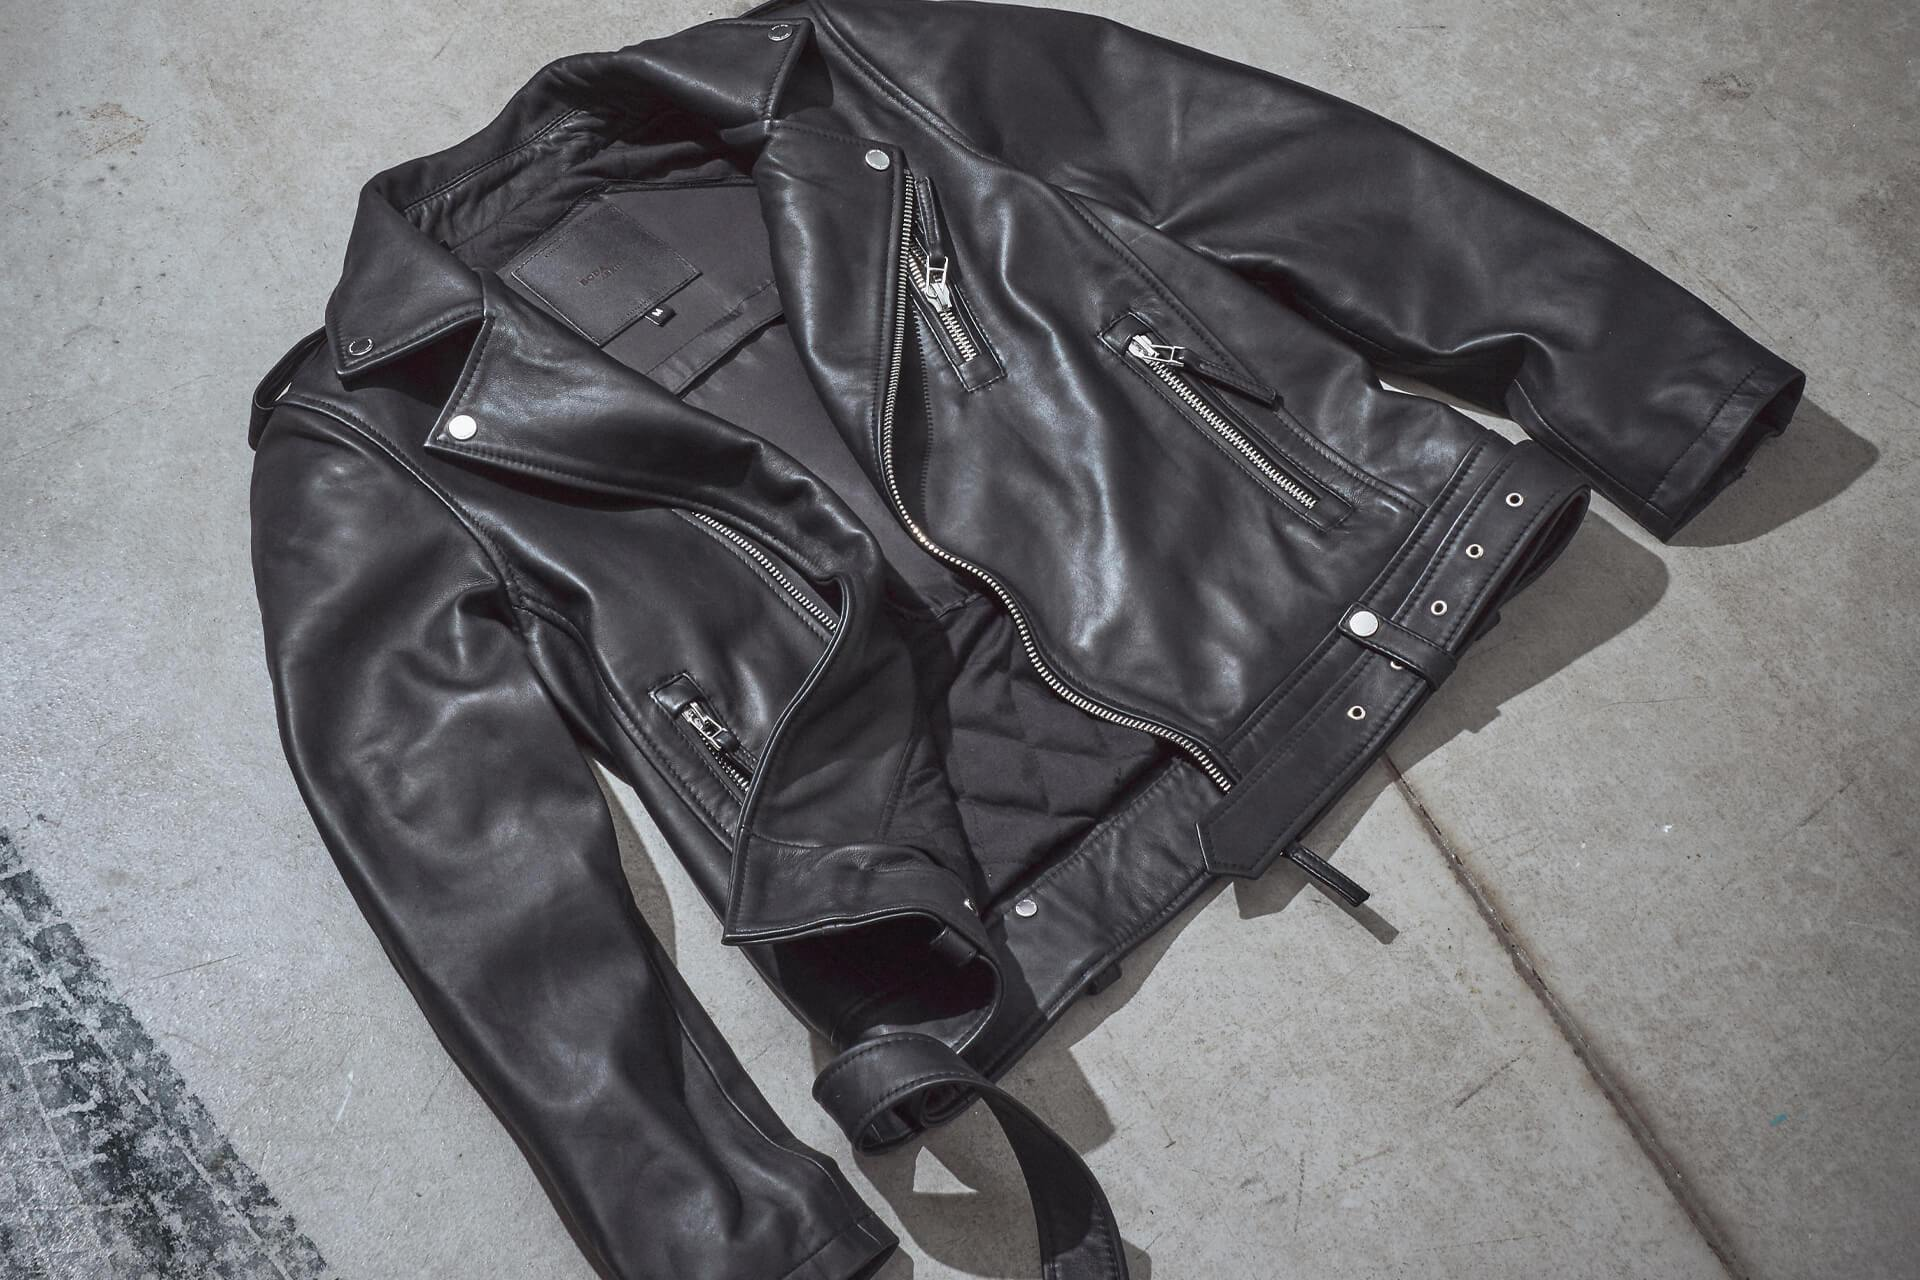 The Boda Skin's 'Voyager' leather motorcycle jacket